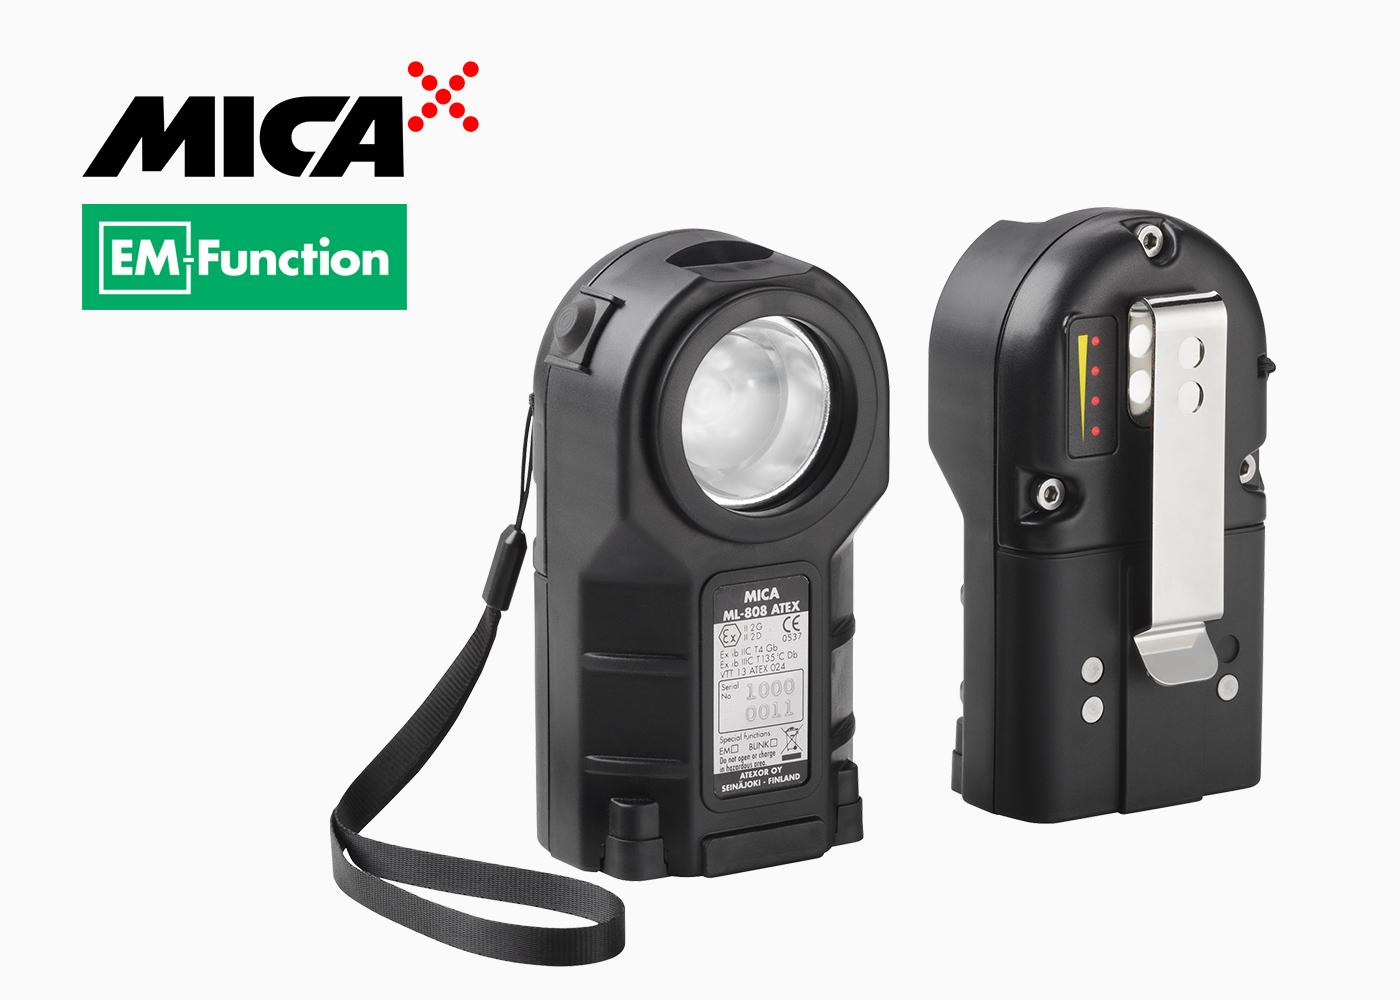 MICA ML-808 equiped with strong belt/pocket clip and wrist strap